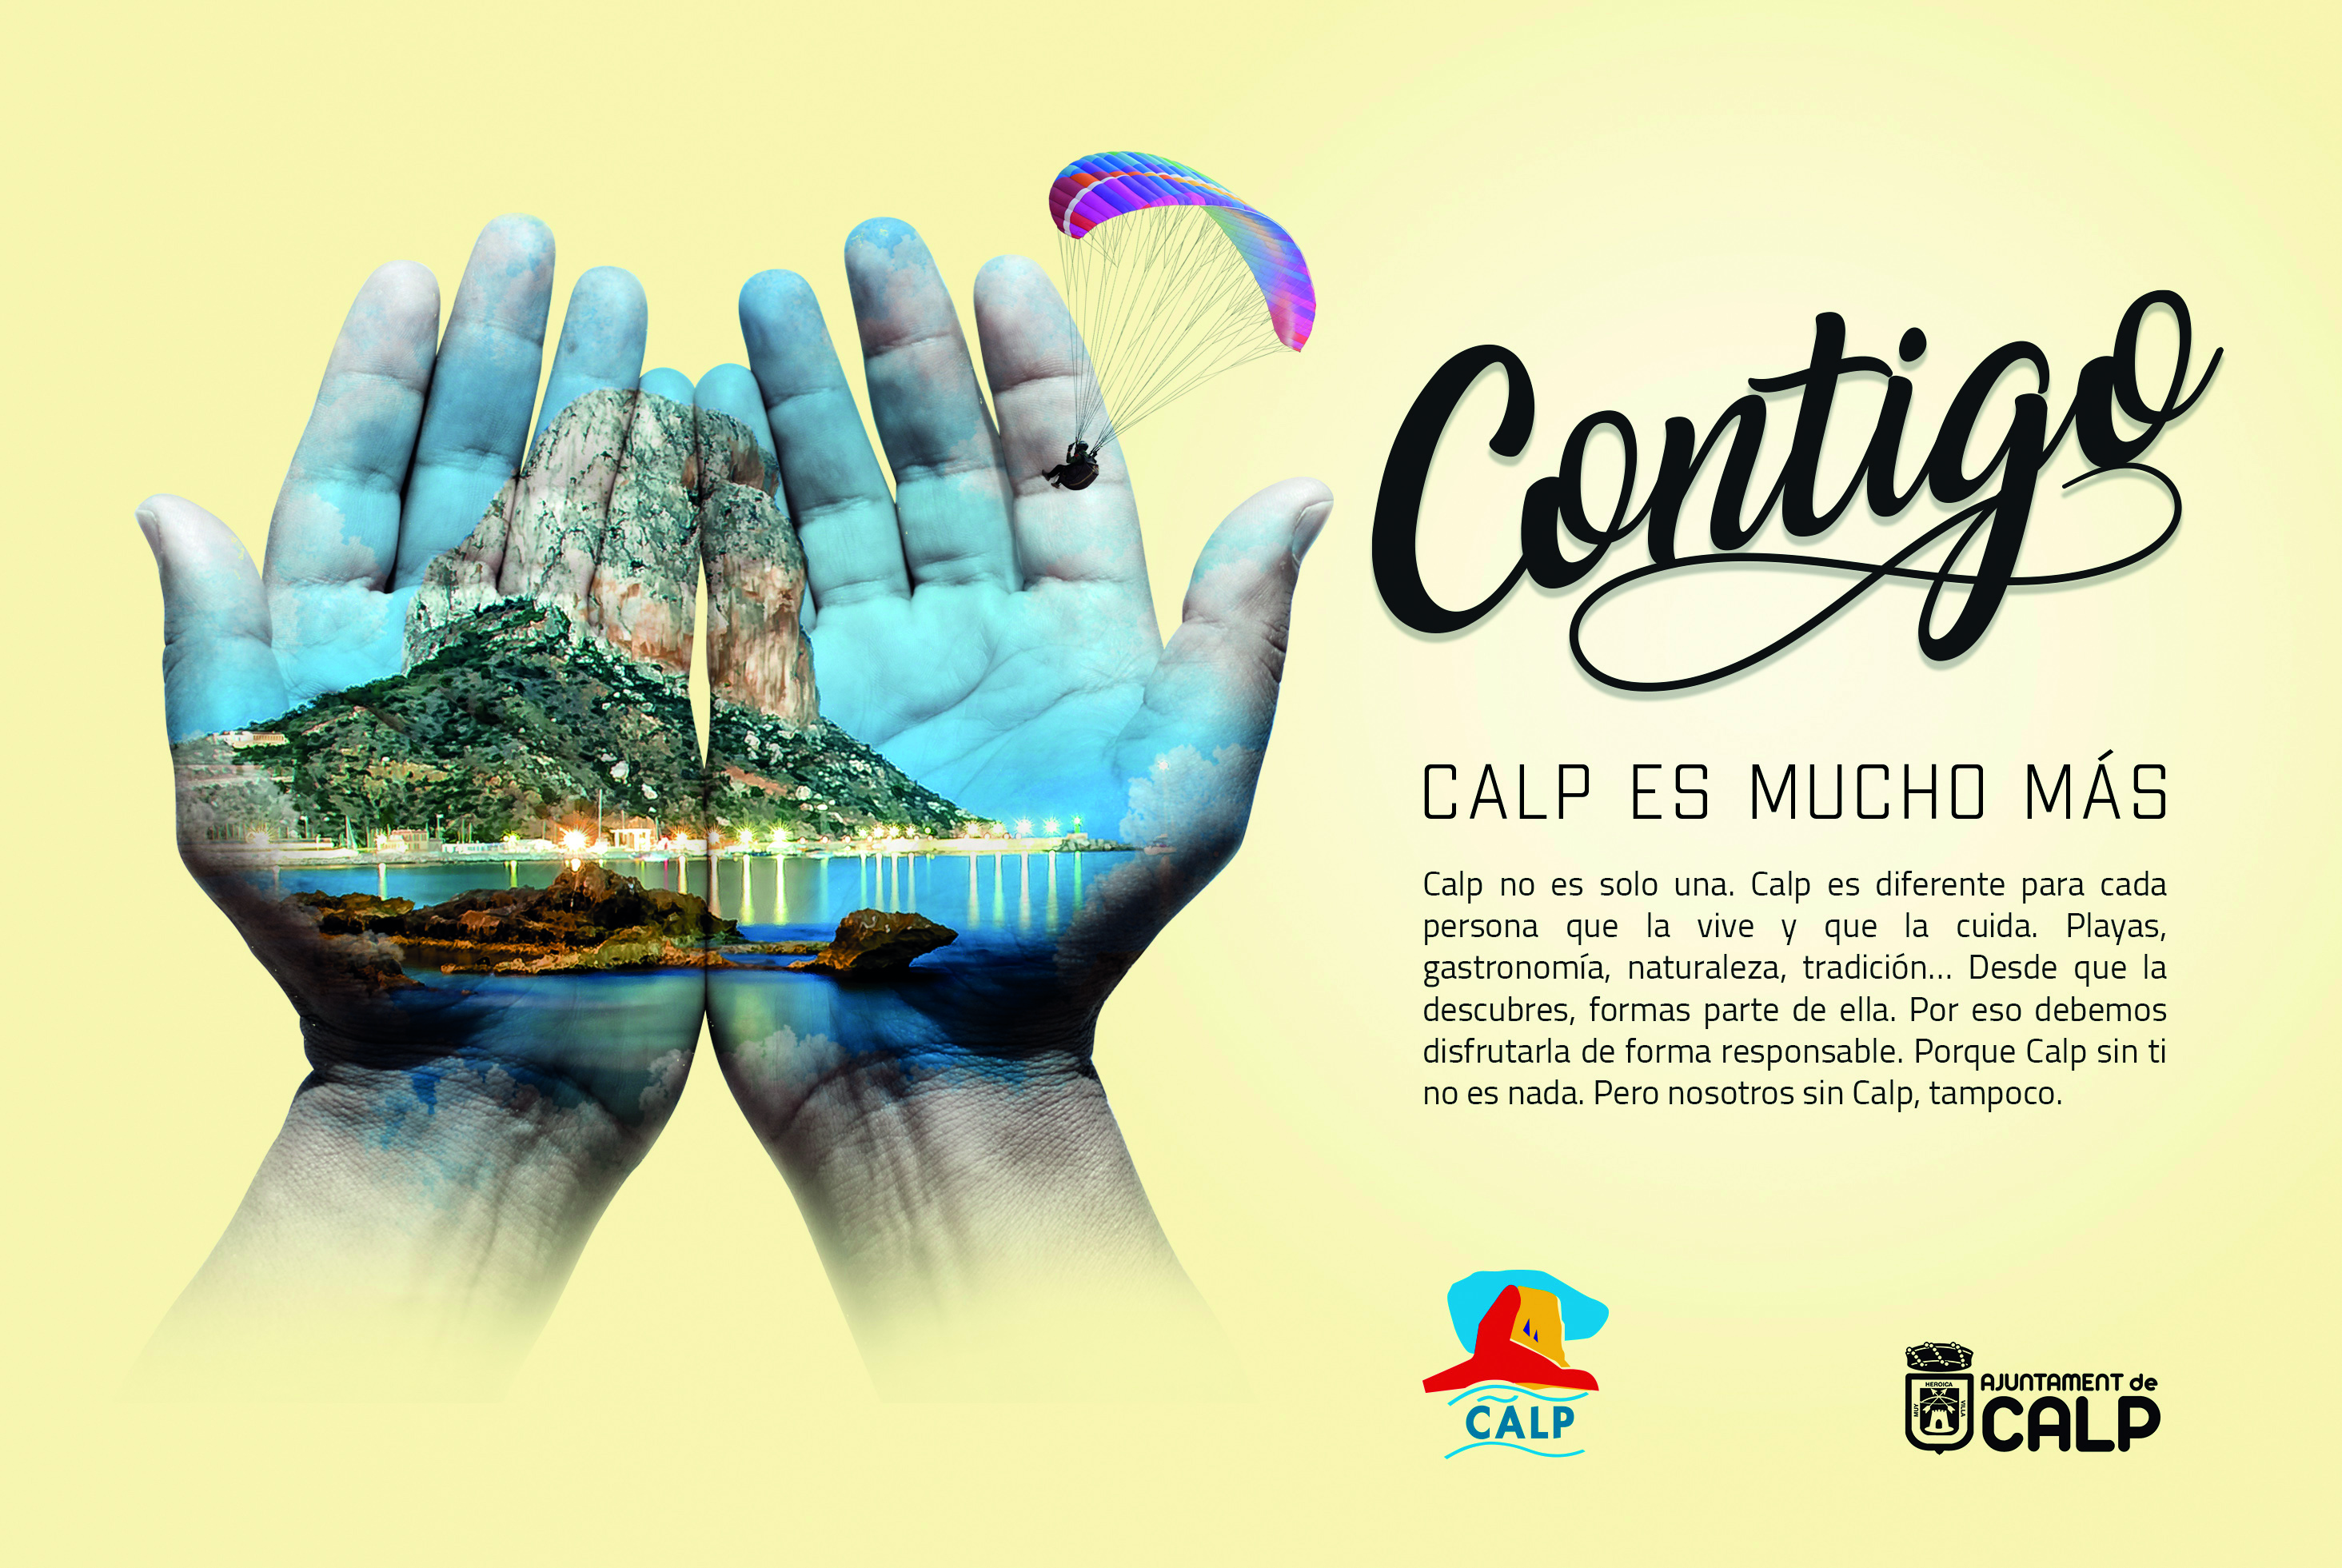 Calp launches awareness campaign to promote responsible and sustainable tourism